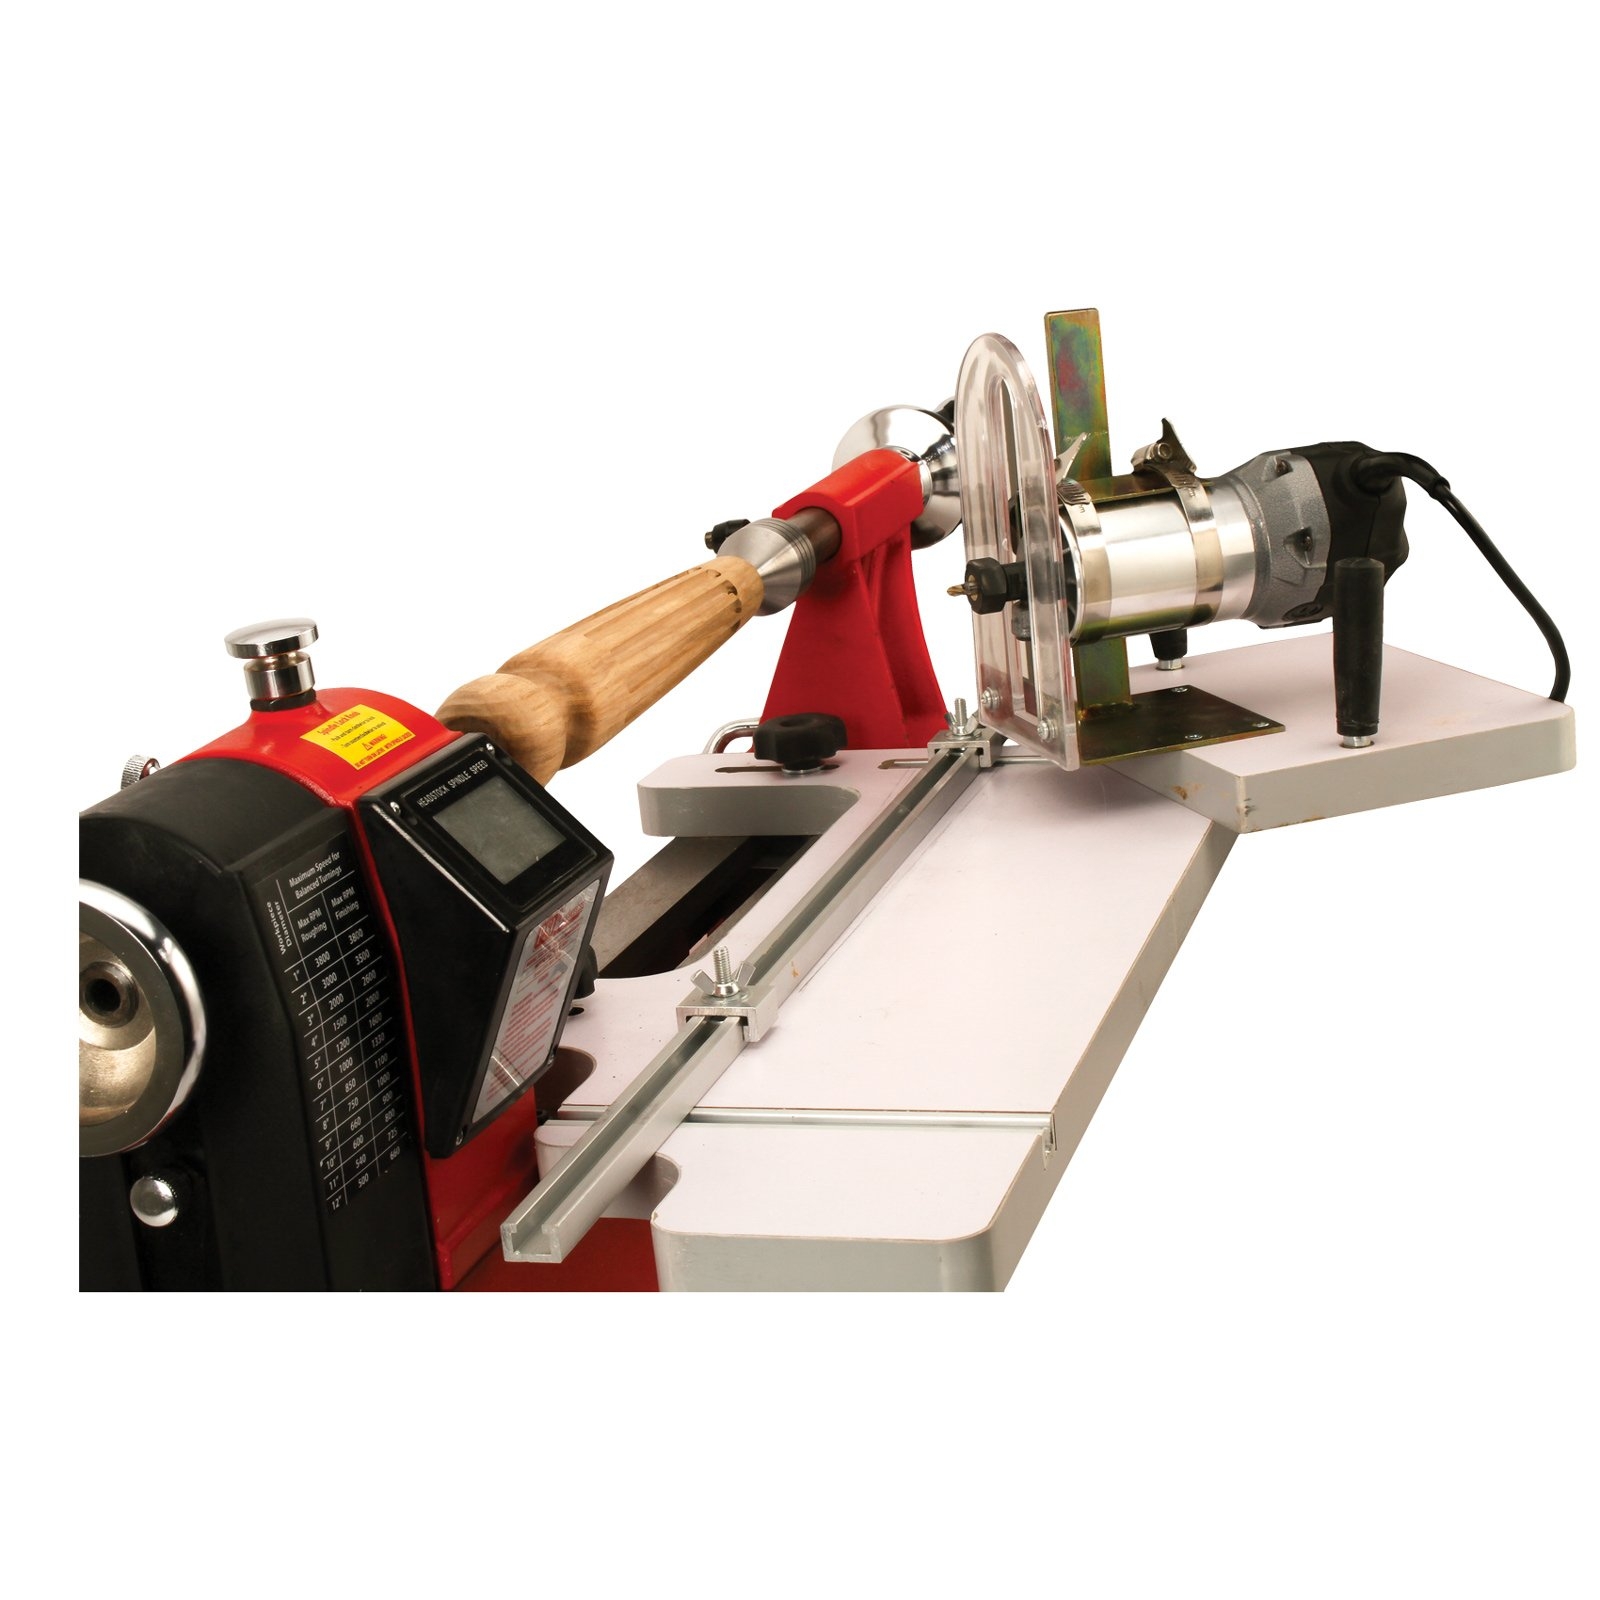 Lathe Mounted Fluting Guide with Router